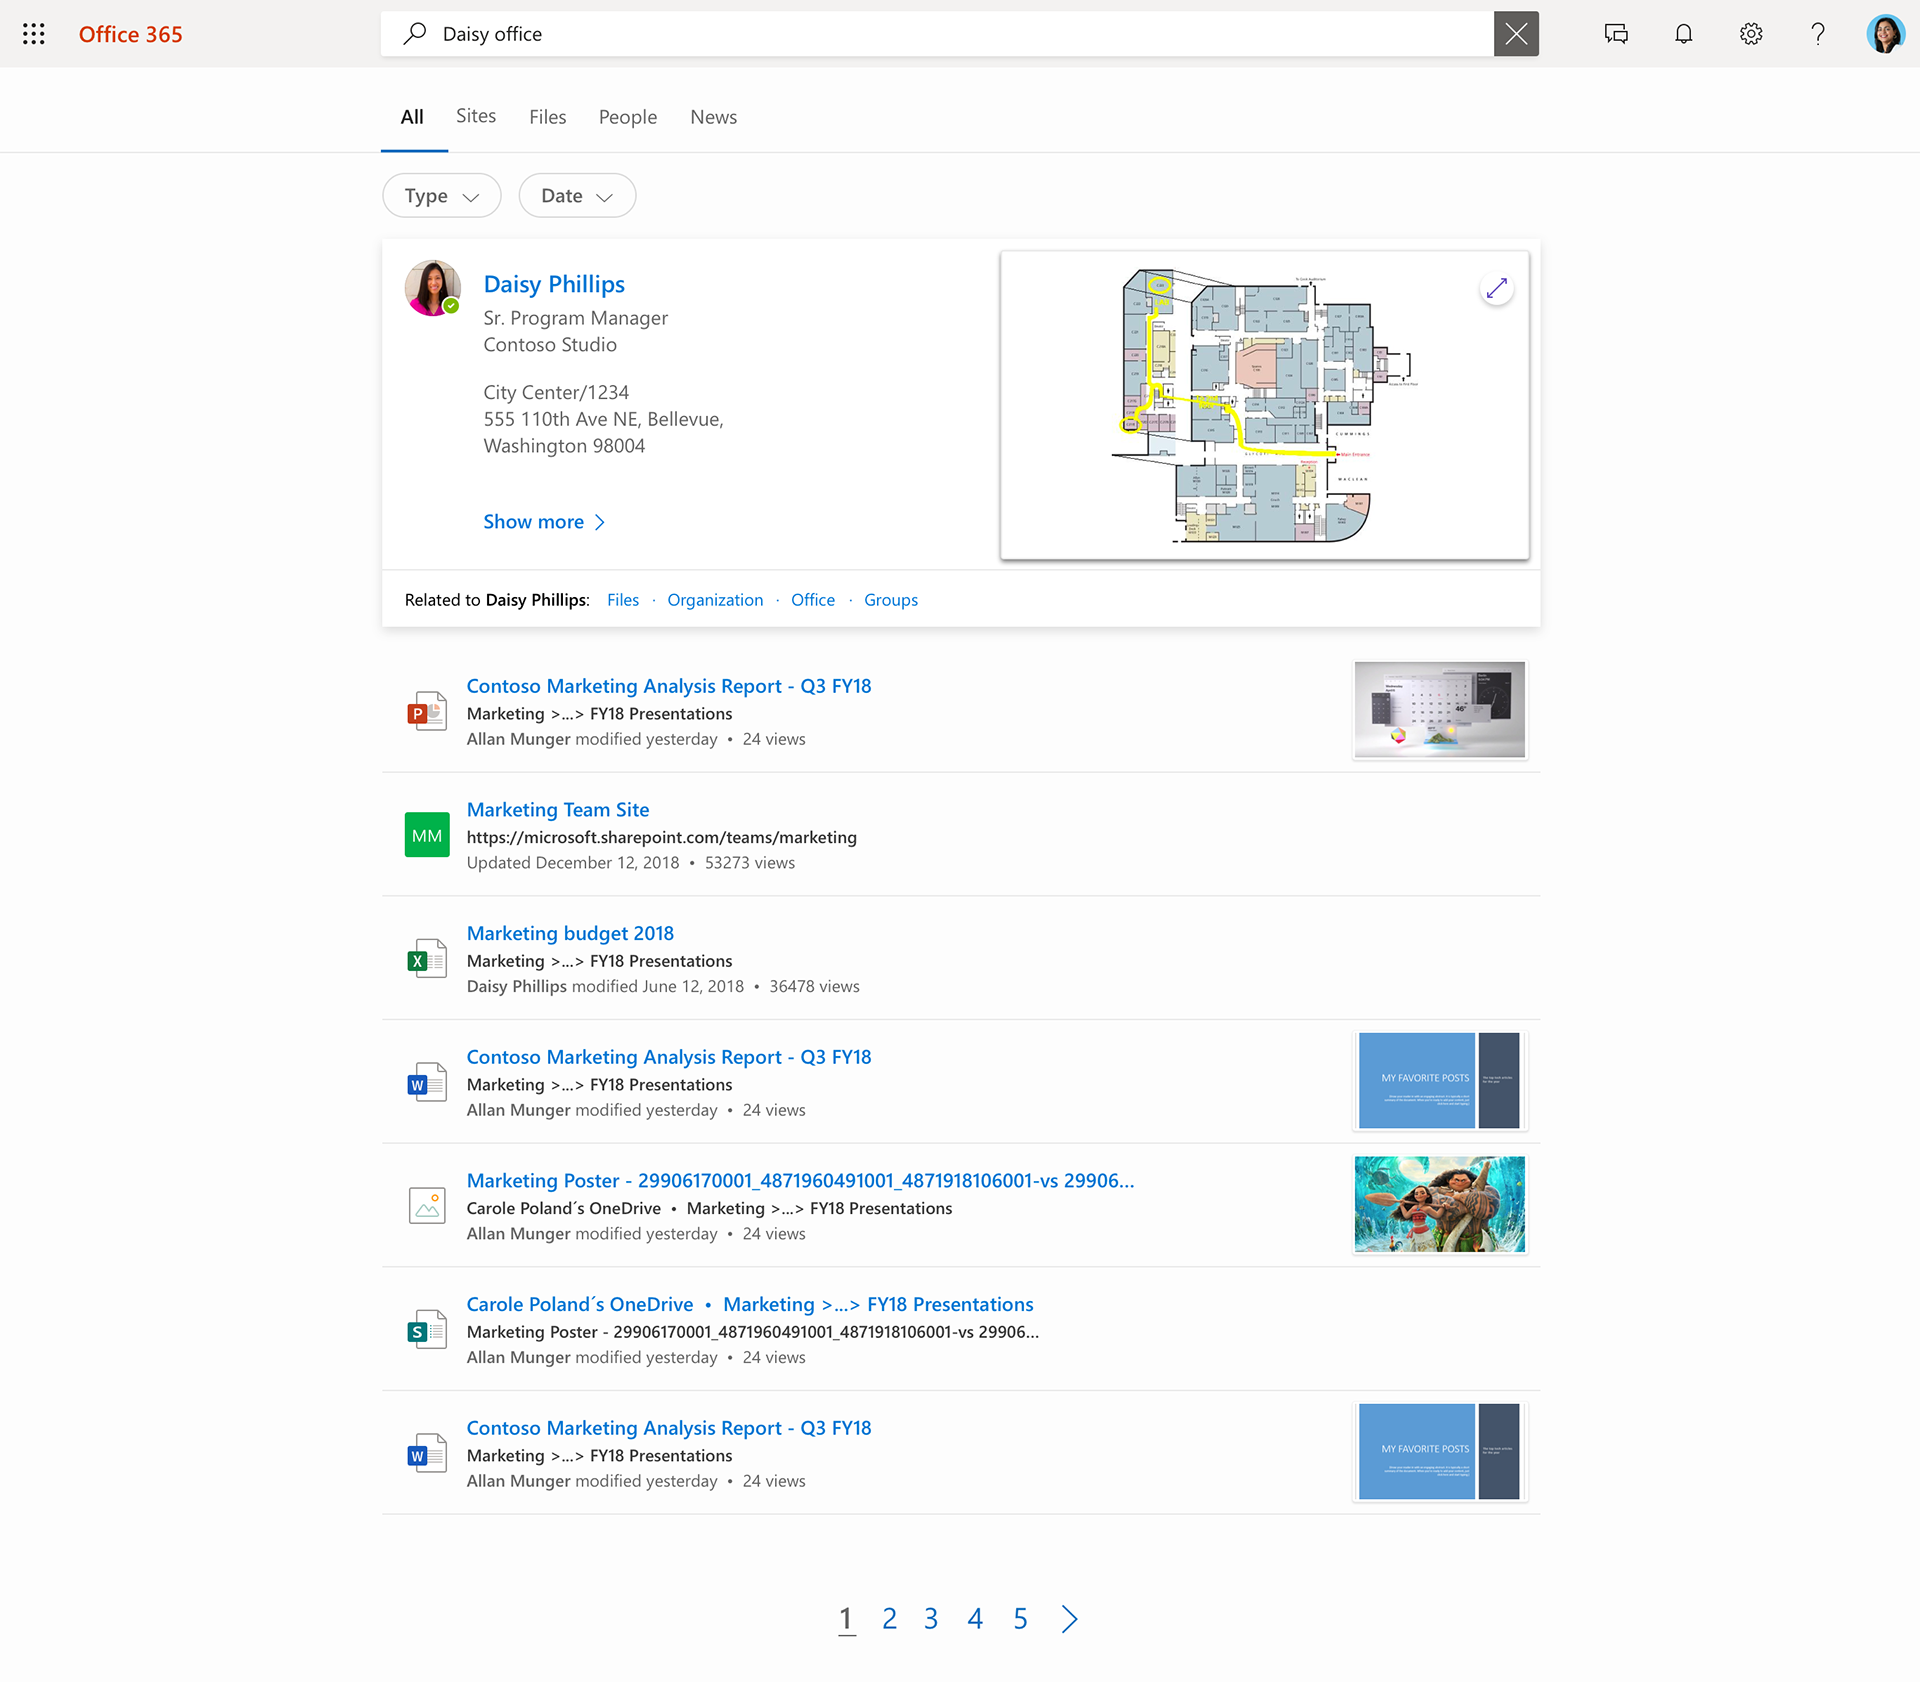 Image of Microsoft Search. A user typed in Daisy office and contacts, files, and sites showed up in her list.